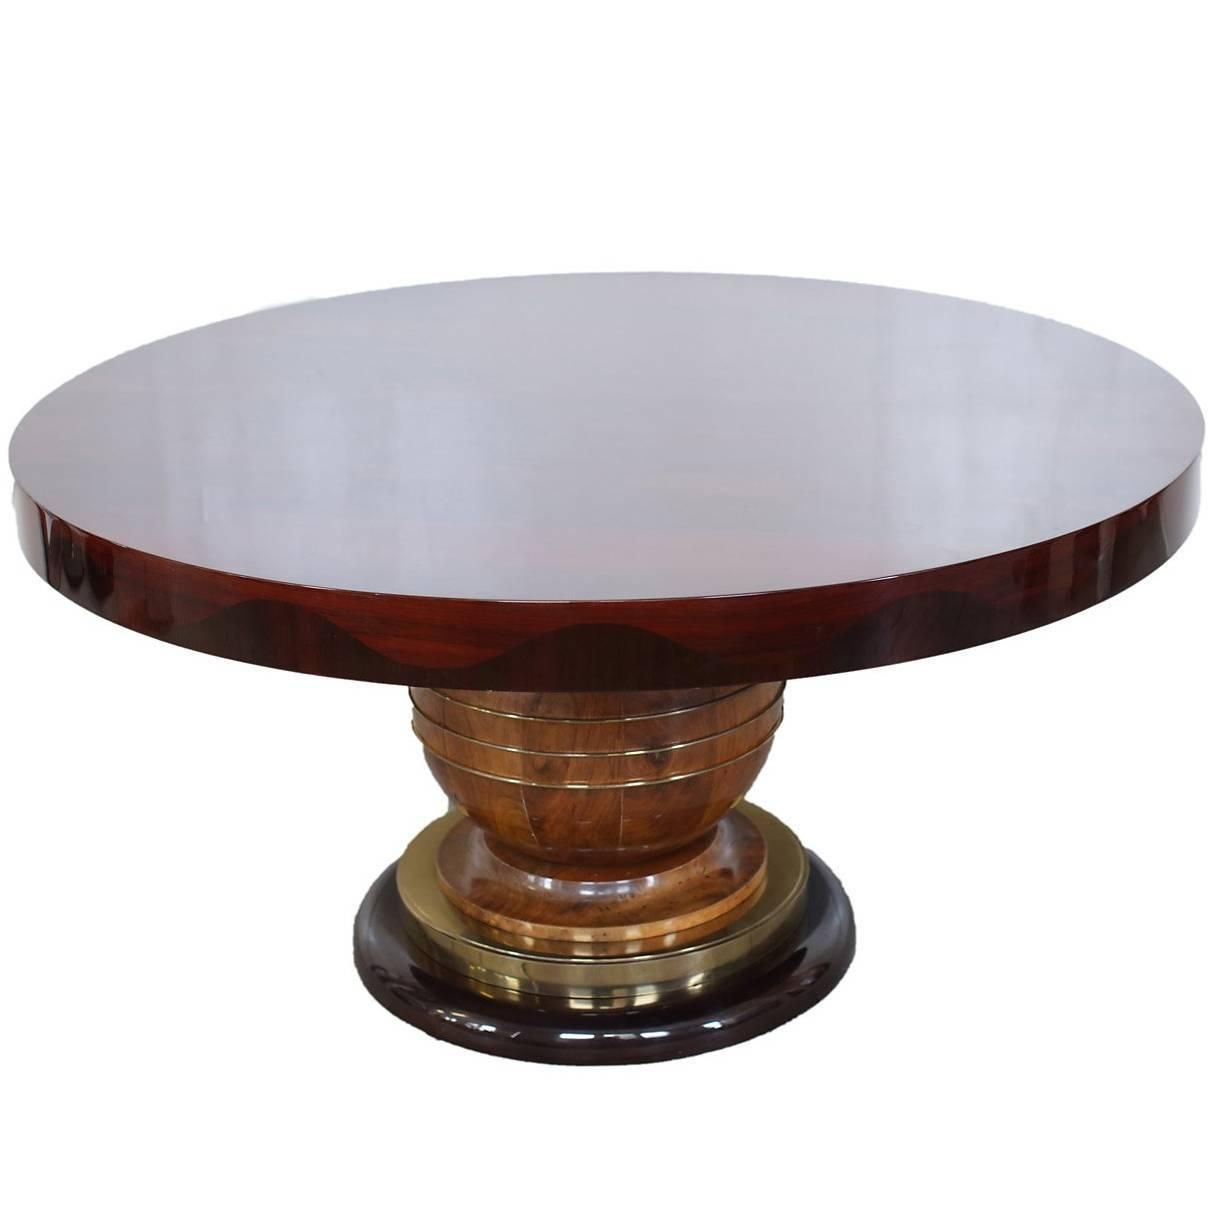 Round Art Deco Dining Table Circa 1940s